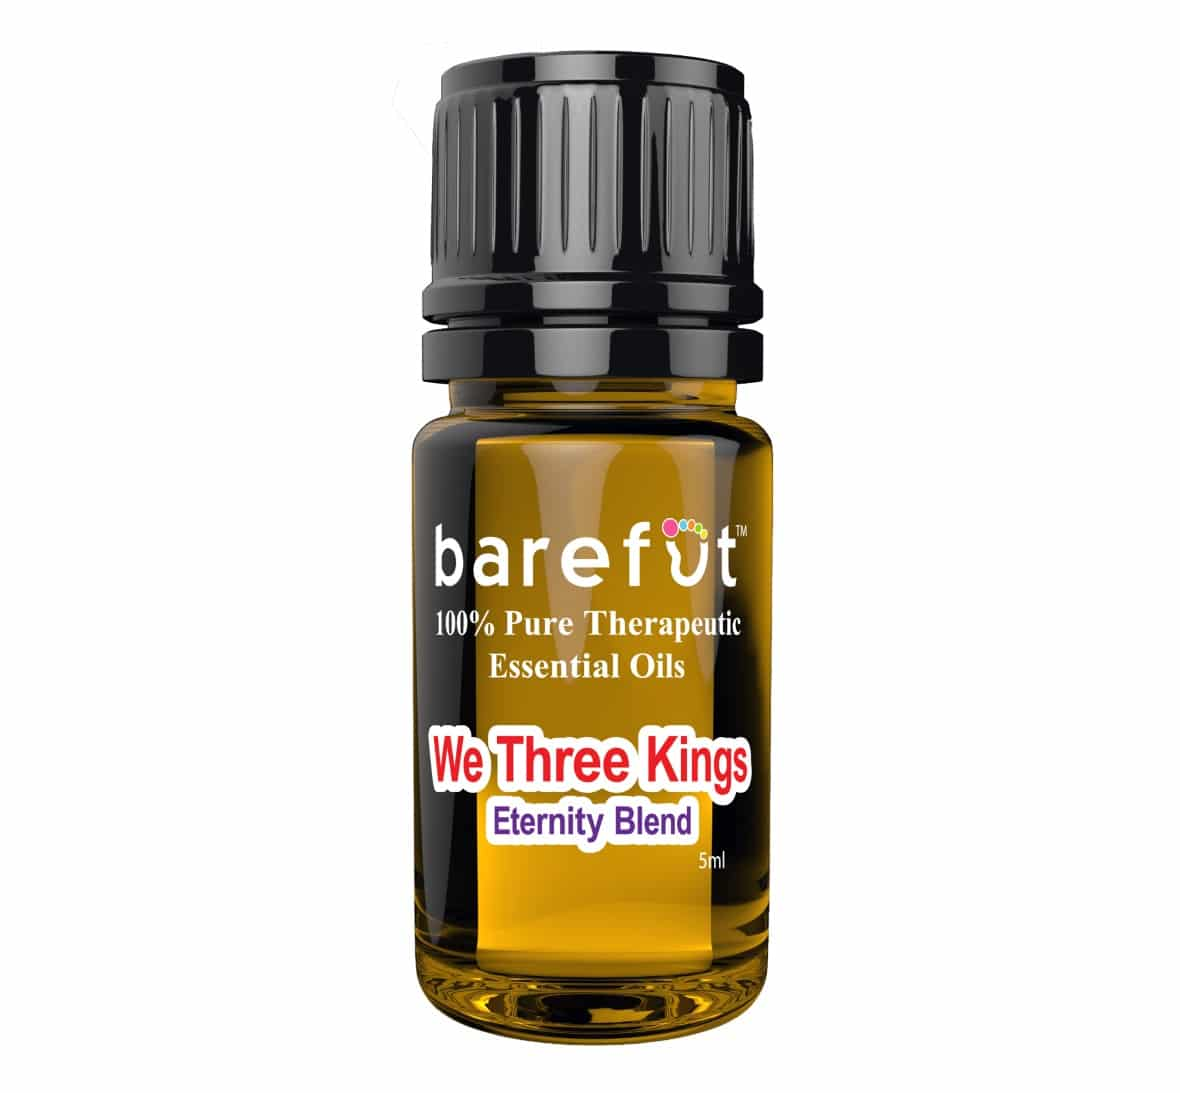 We Three Kings Eternity Blend Barefut Essential Oils